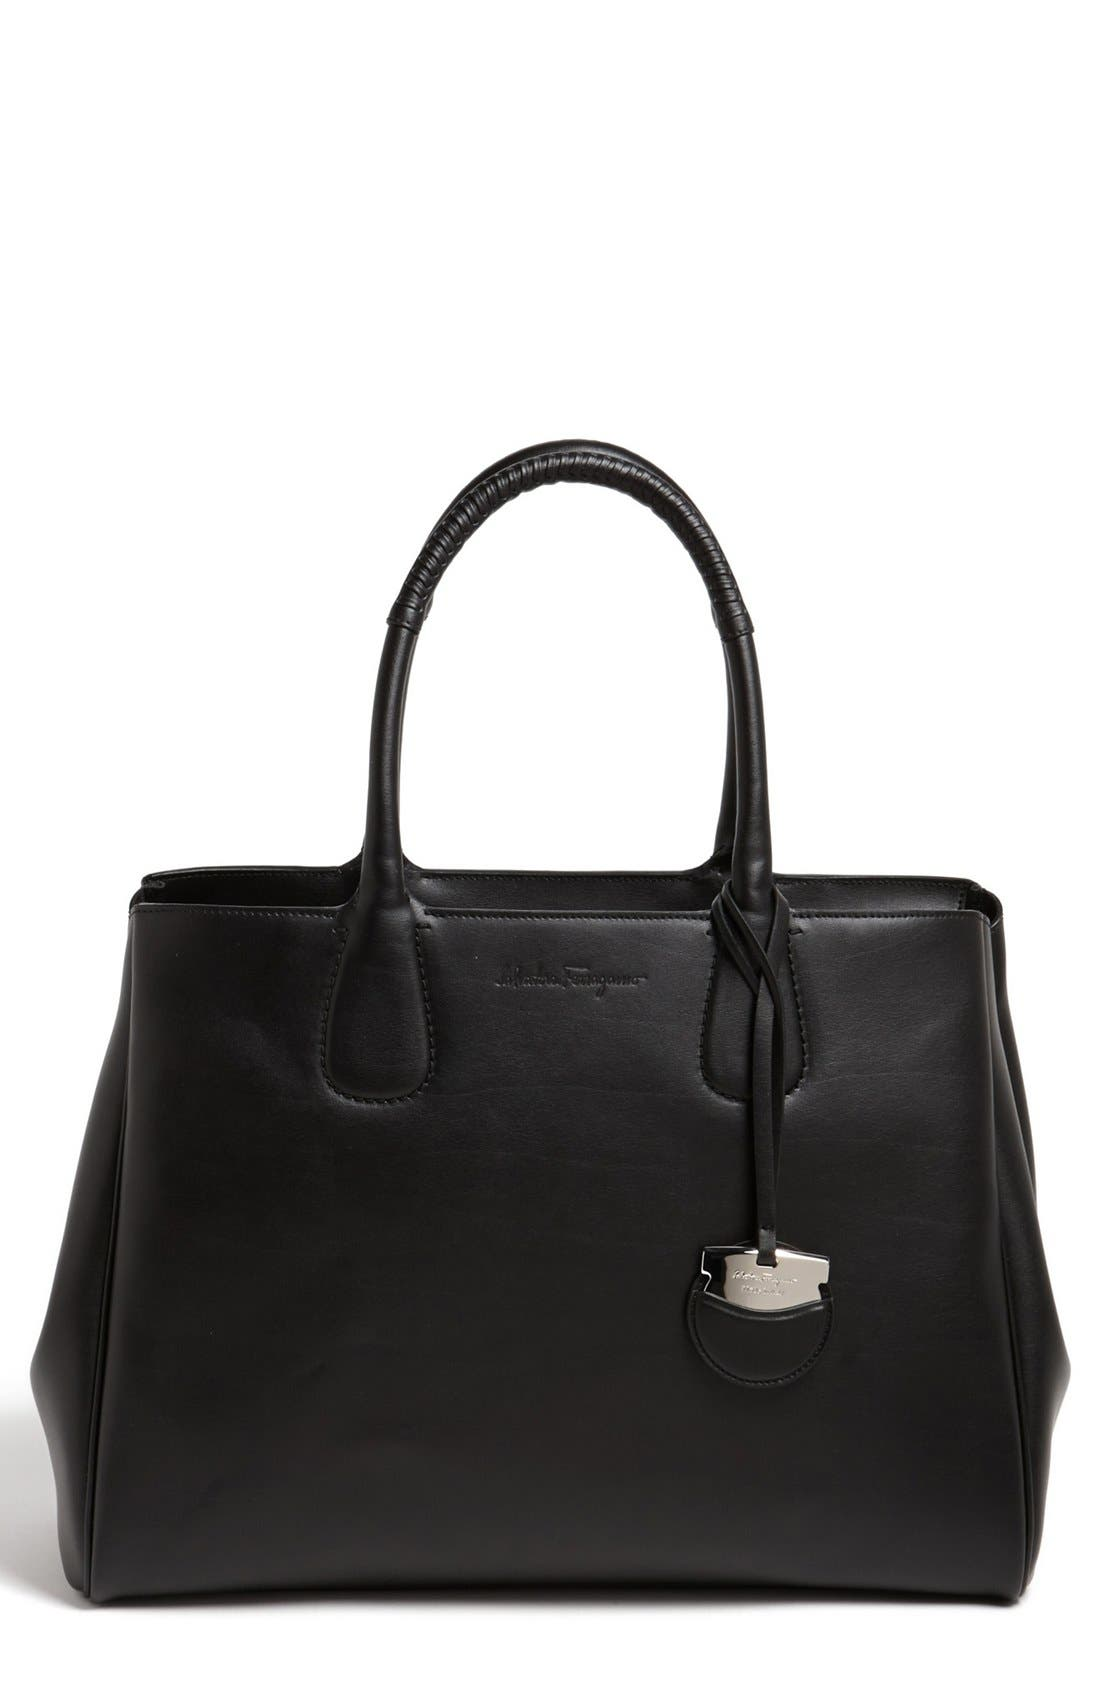 Alternate Image 1 Selected - Salvatore Ferragamo 'Large Nolita' Calfskin Tote